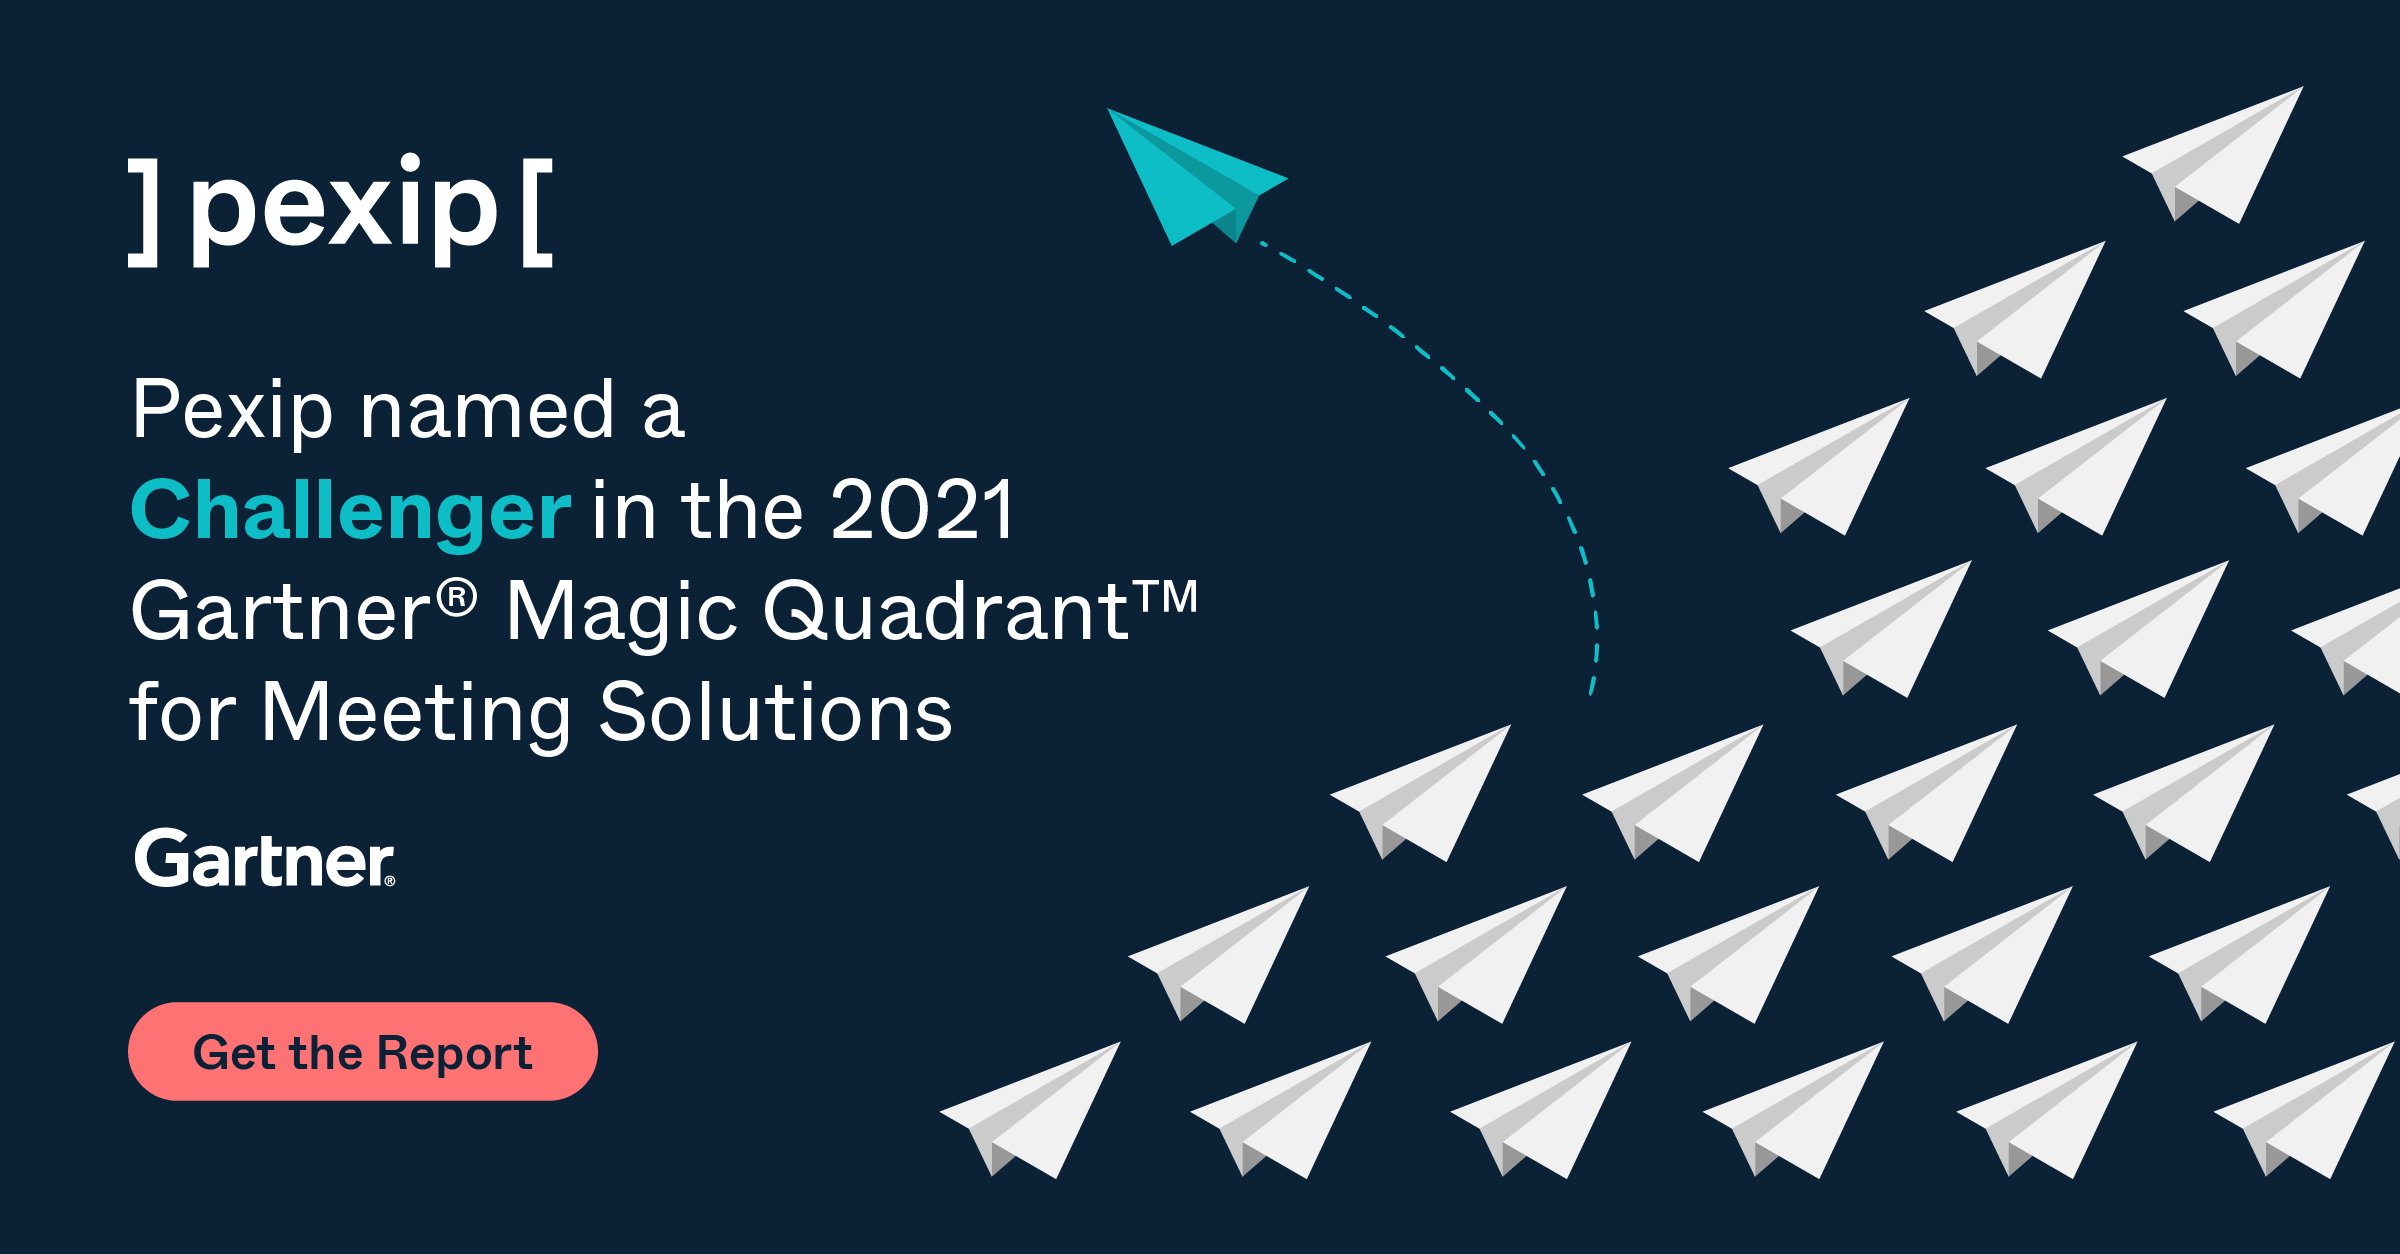 Pexip Named a Challenger in the 2021 Gartner Magic Quadrant for Meeting Solutions